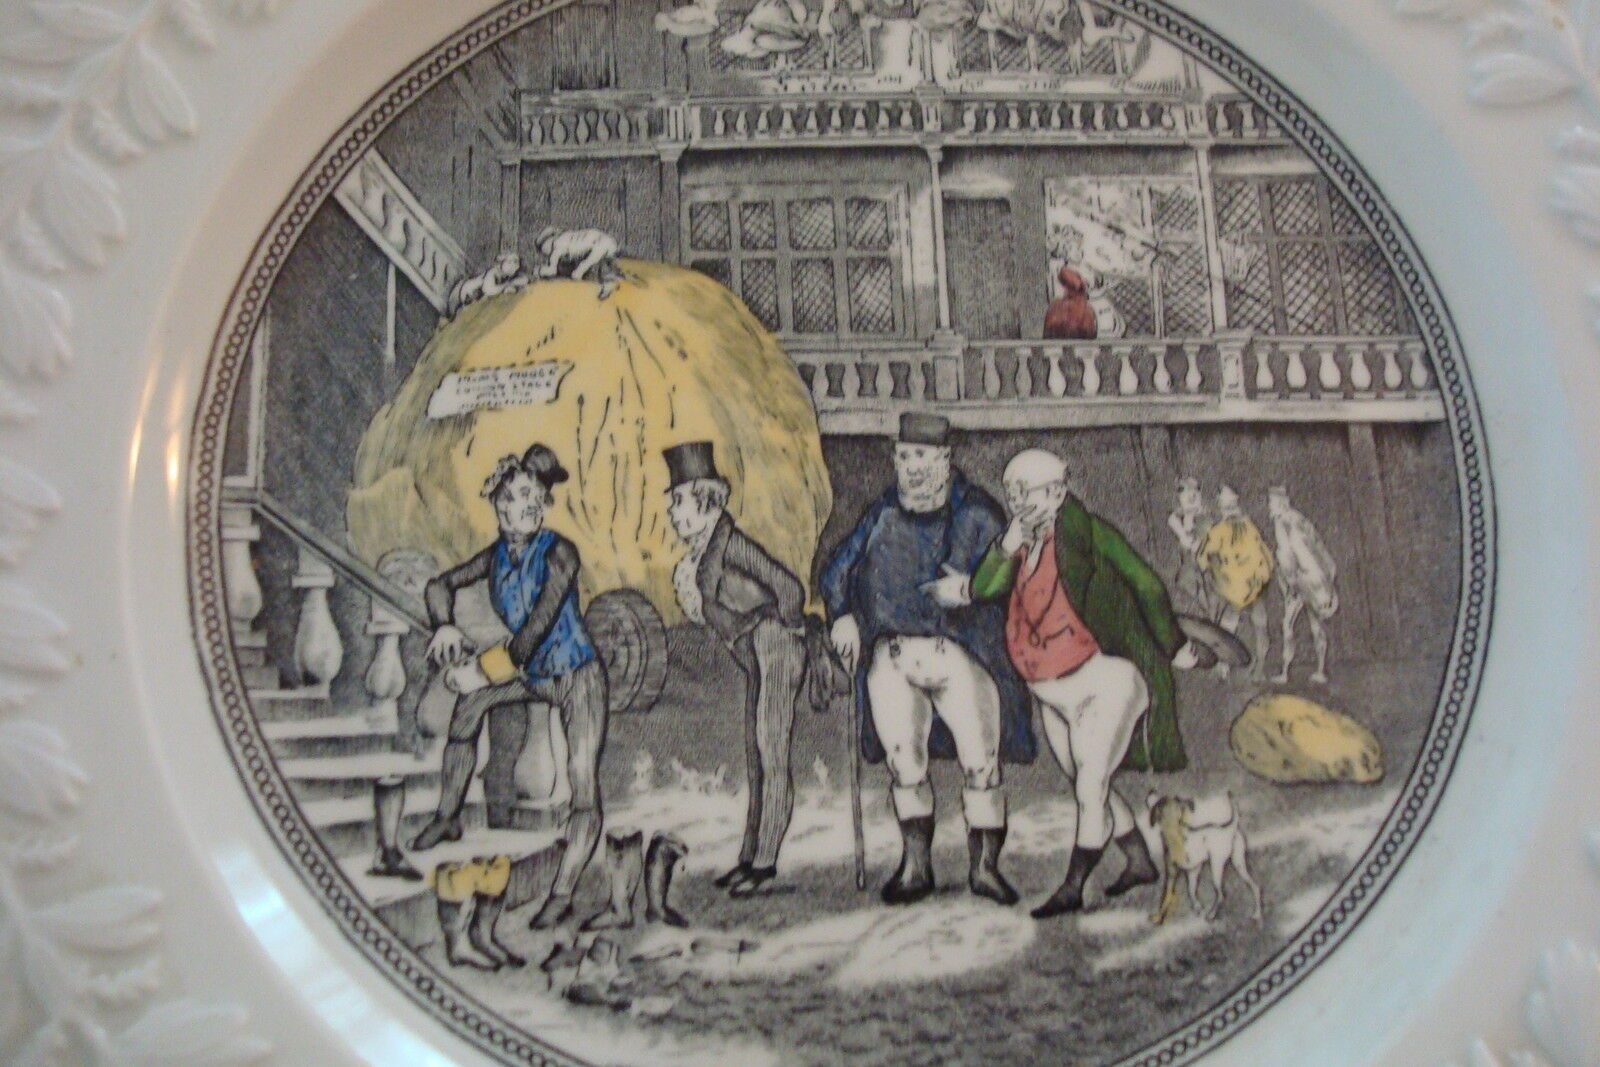 the pickwick papers The pickwick papers actually began life as a project to promote the humorous illustrations of robert seymour, who was enjoying success in the 1830s as a depicter of the cockney sportsman ineptly indulging in the country pursuits of hunting, shooting, and fishing.